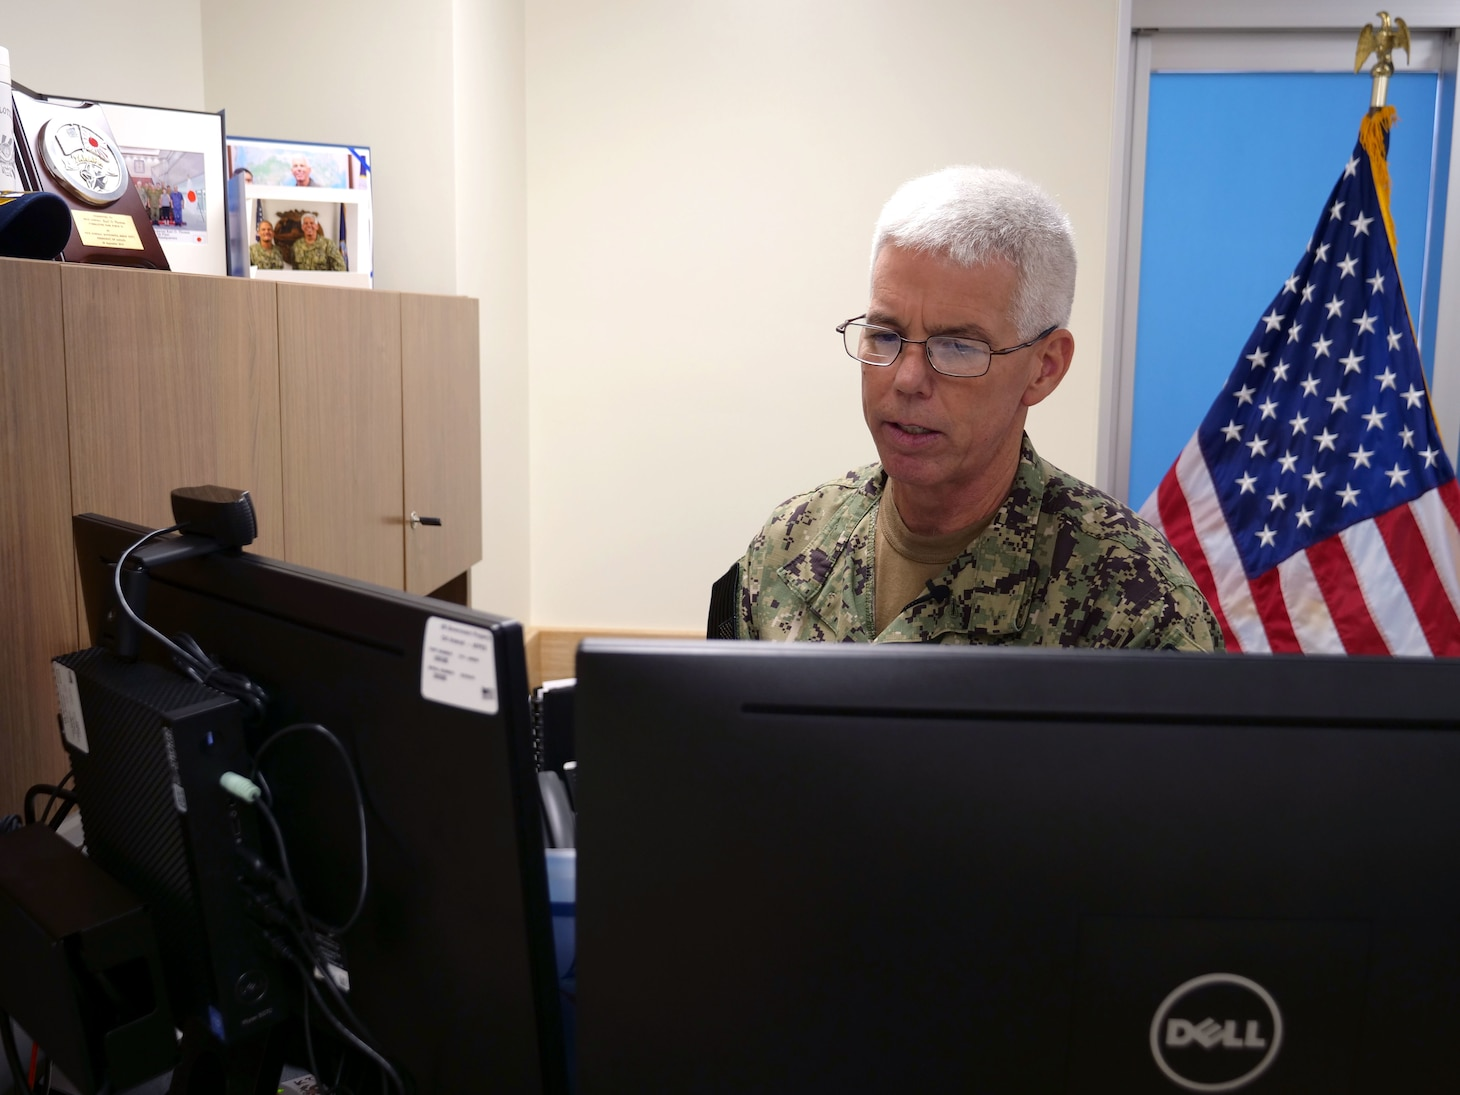 210810-N-IY633-1012 YOKOSUKA, Japan (Aug. 9, 2021) - Commander, U.S. 7th Fleet, Vice Adm. Karl Thomas, provides opening remarks during the Southeast Asia Cooperation and Training (SEACAT) 2021 virtual opening ceremonies, Aug. 10. In its 20th year, SEACAT is a multilateral exercise designed to enhance cooperation among 21 participating Southeast Asian countries and provide mutual support and a common goal to address crises, contingencies, and illegal activities in the maritime domain in support of a free and open Indo-Pacific. (U.S. Navy photo by Mass Communication Specialist 1st Class Amanda S. Kitchner)